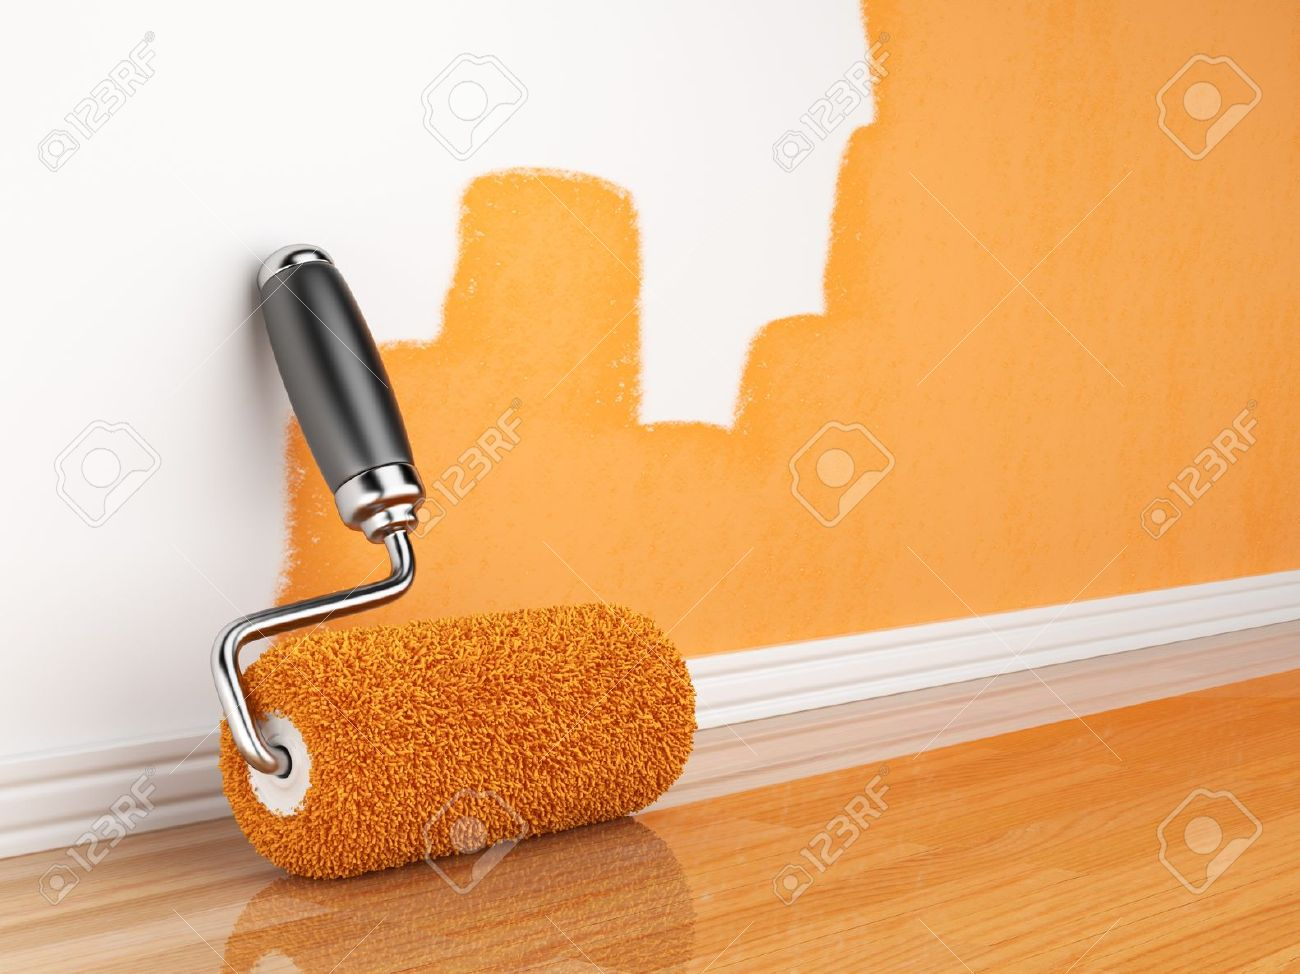 Painting of an empty wall Renovation home 3D illustration - 14099027